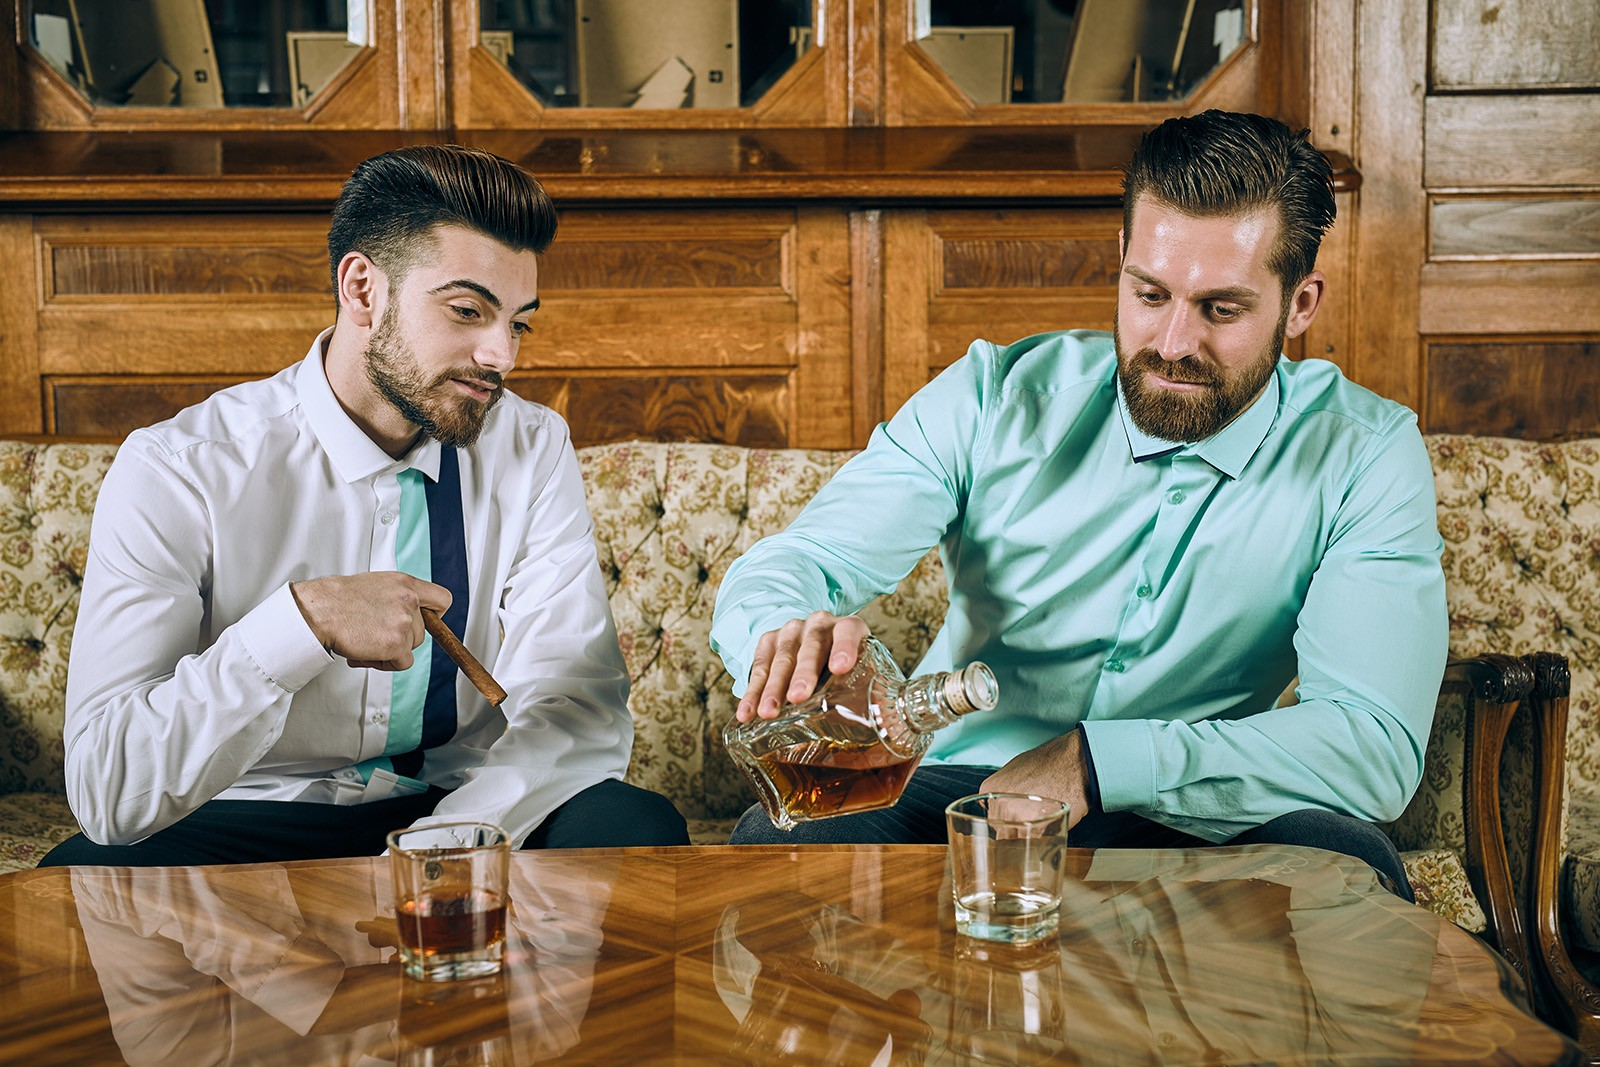 sibling rivalry and alcoholism